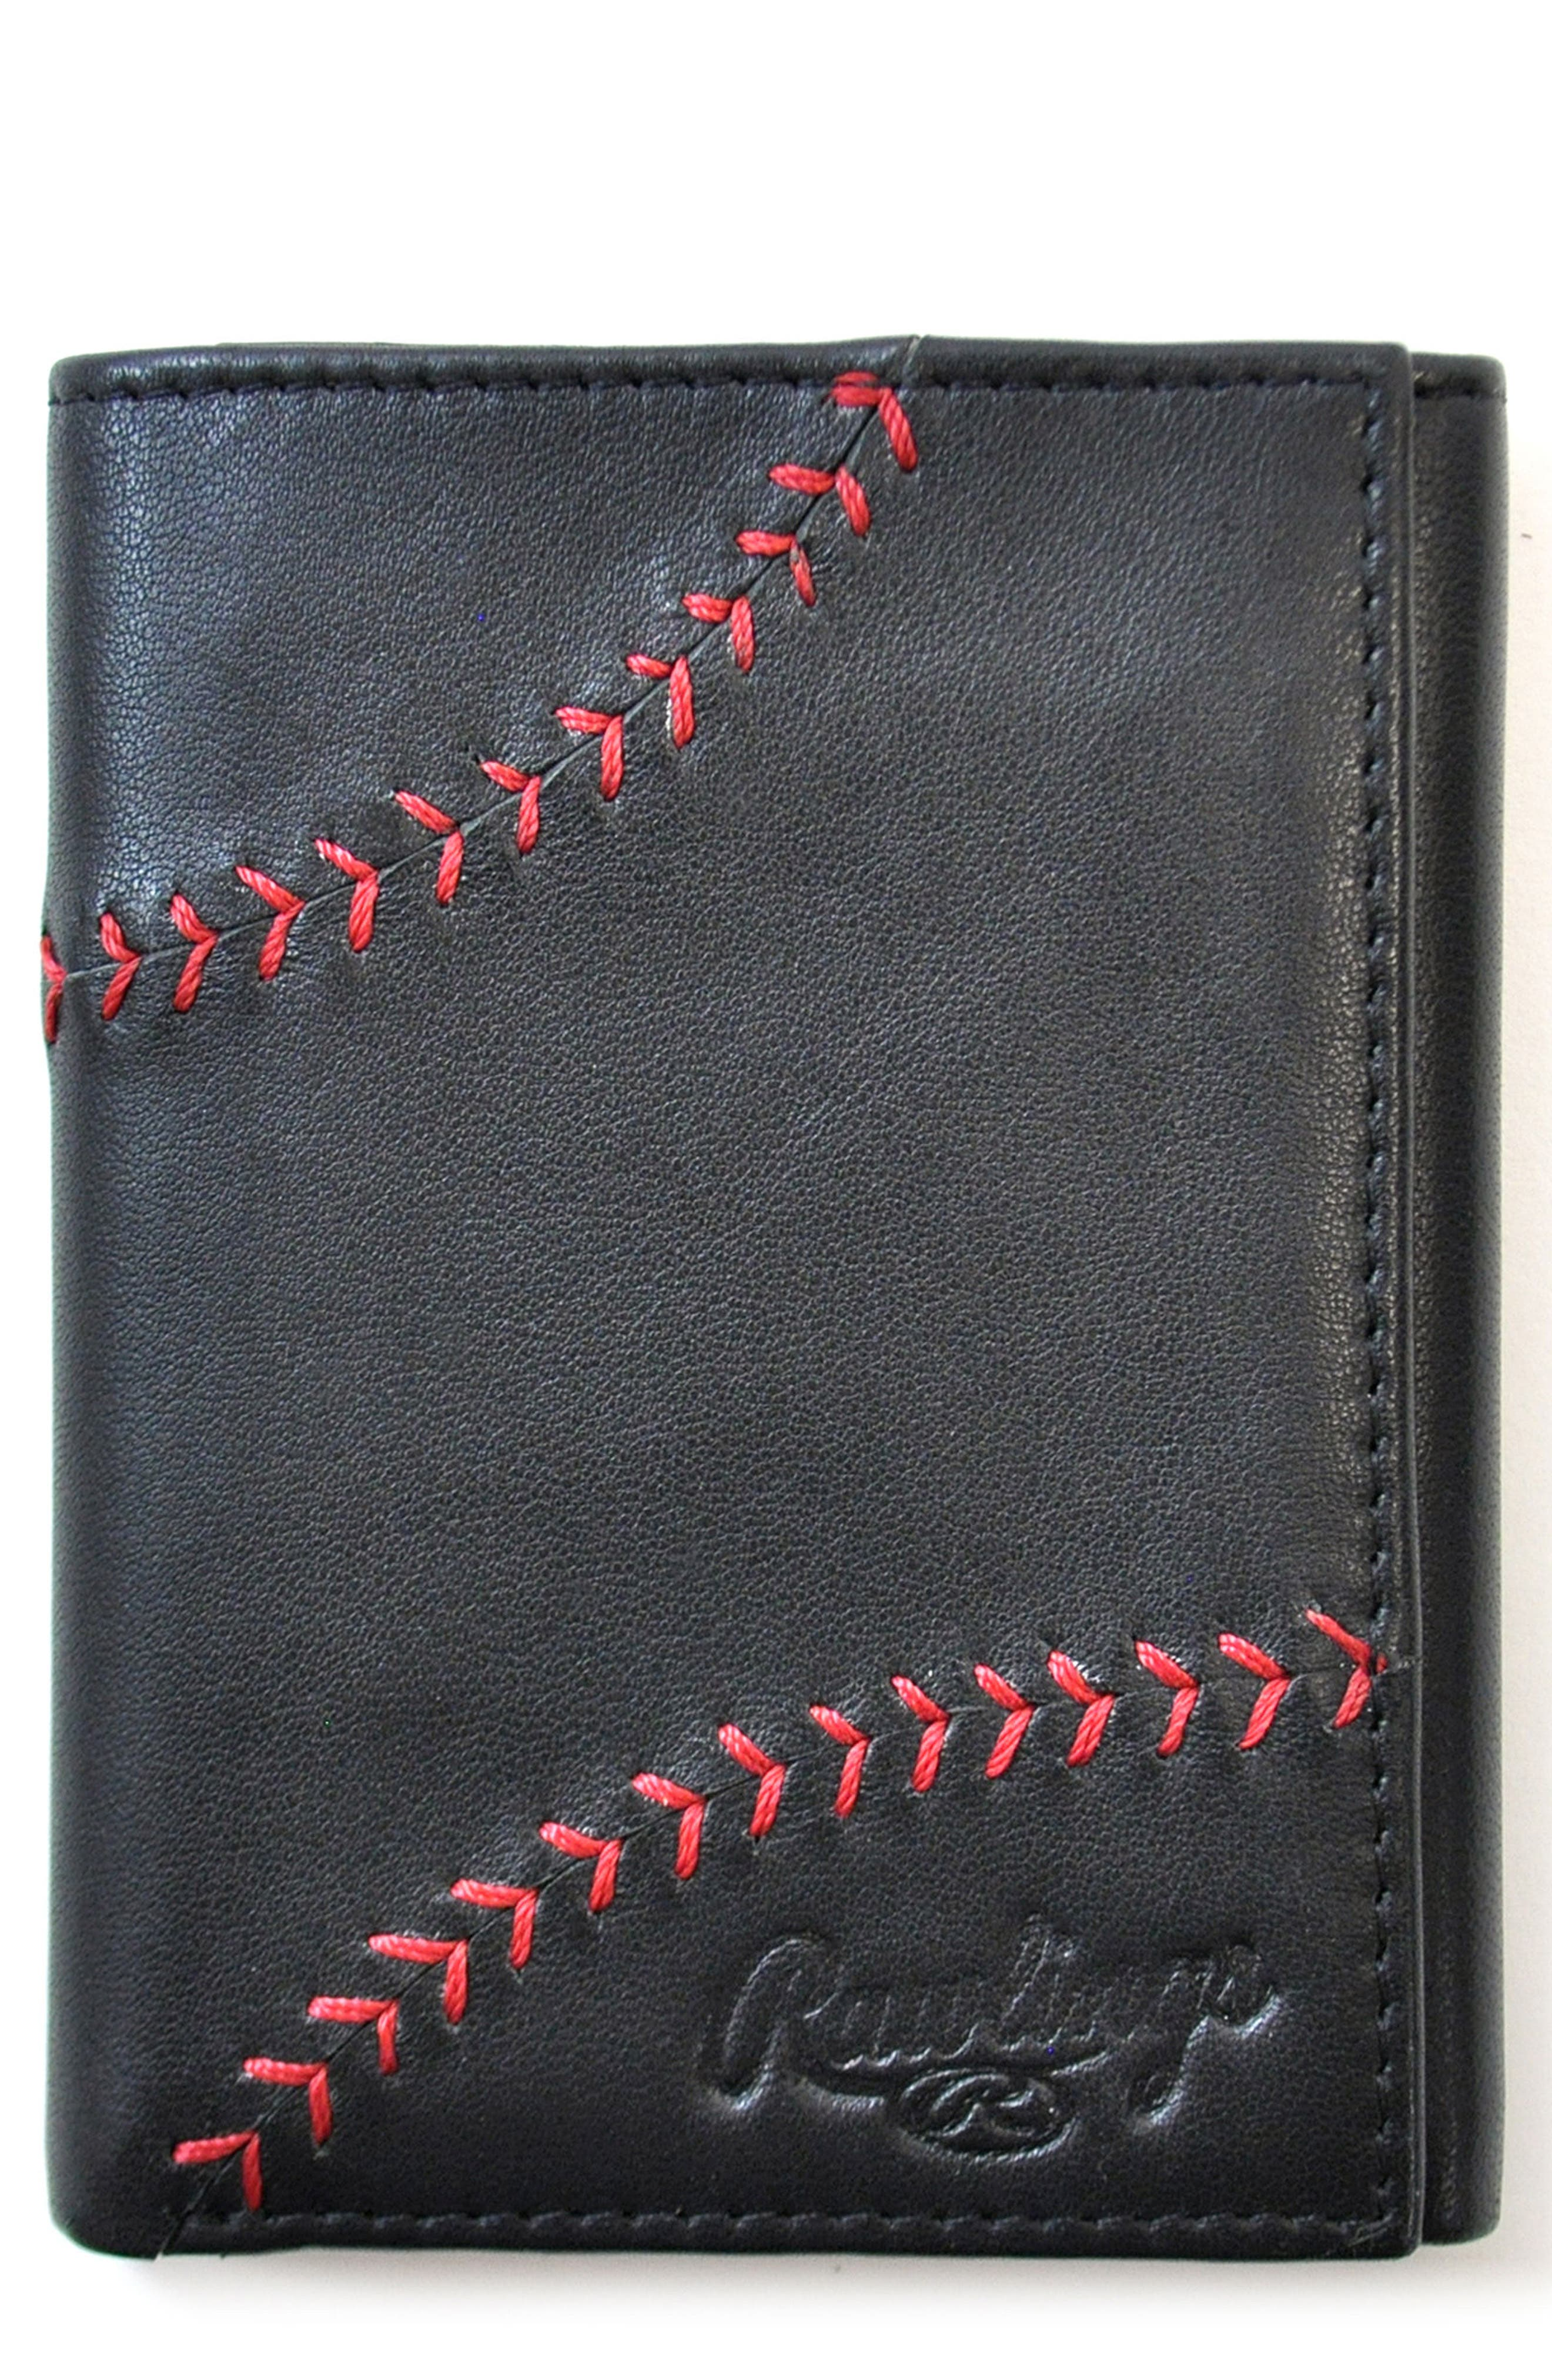 Baseball Stitch Leather Trifold Wallet,                         Main,                         color, 001